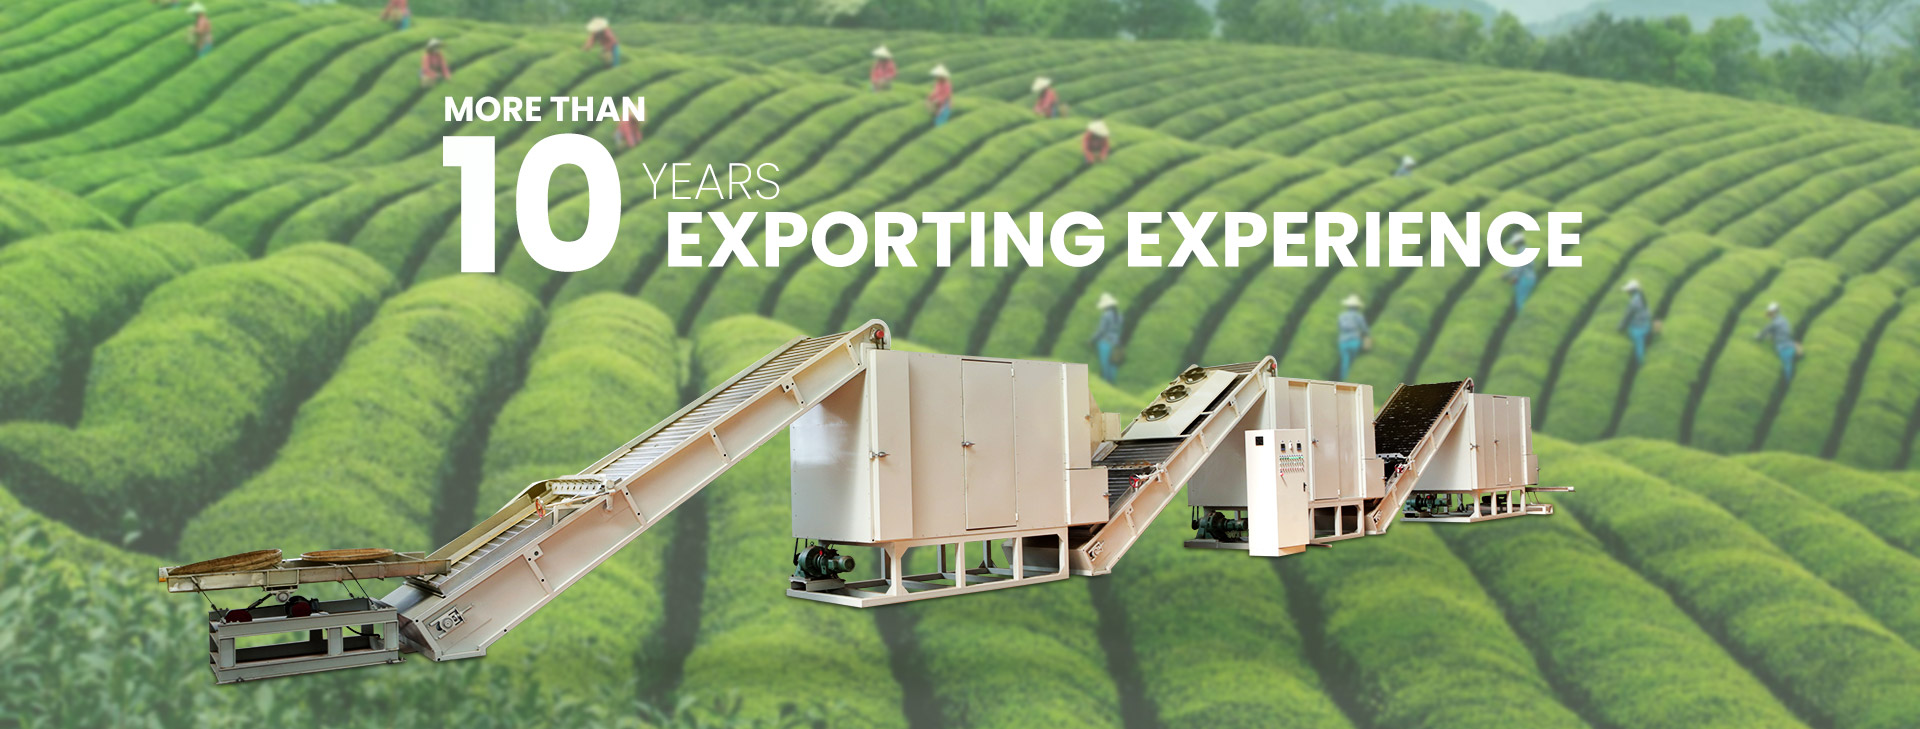 More Than 10 Years  Exporting Experience